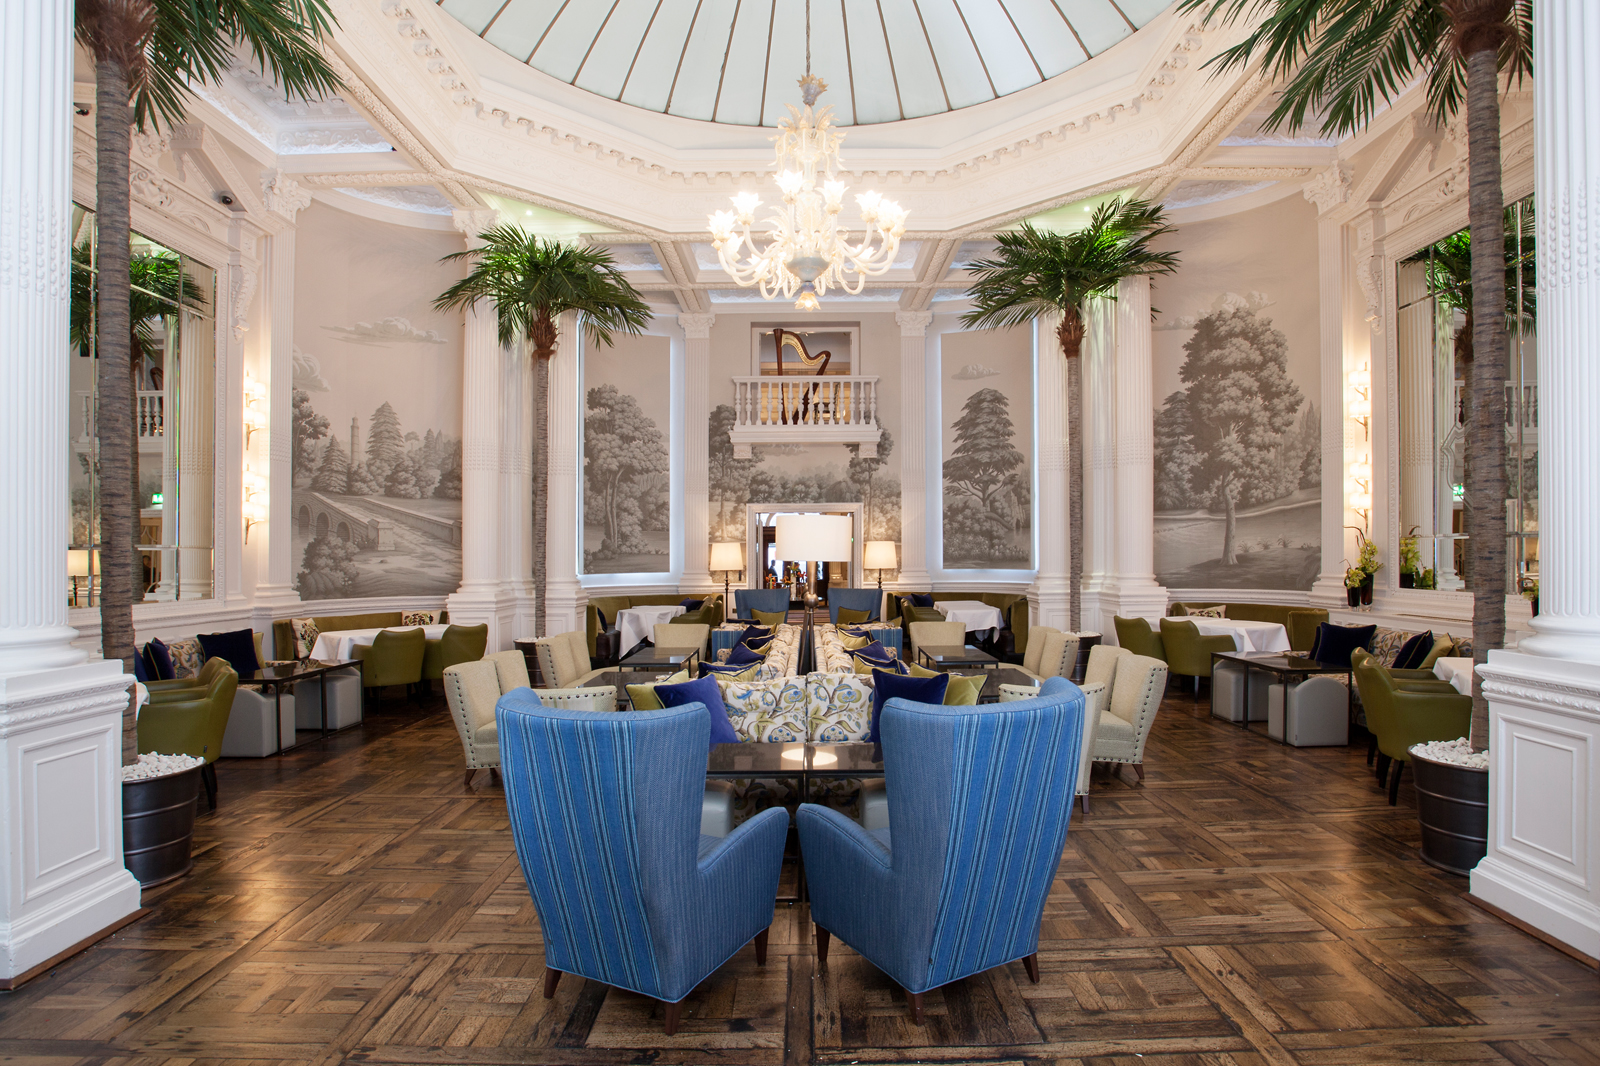 Palm Court at The Balmoral - afternoon tea heaven